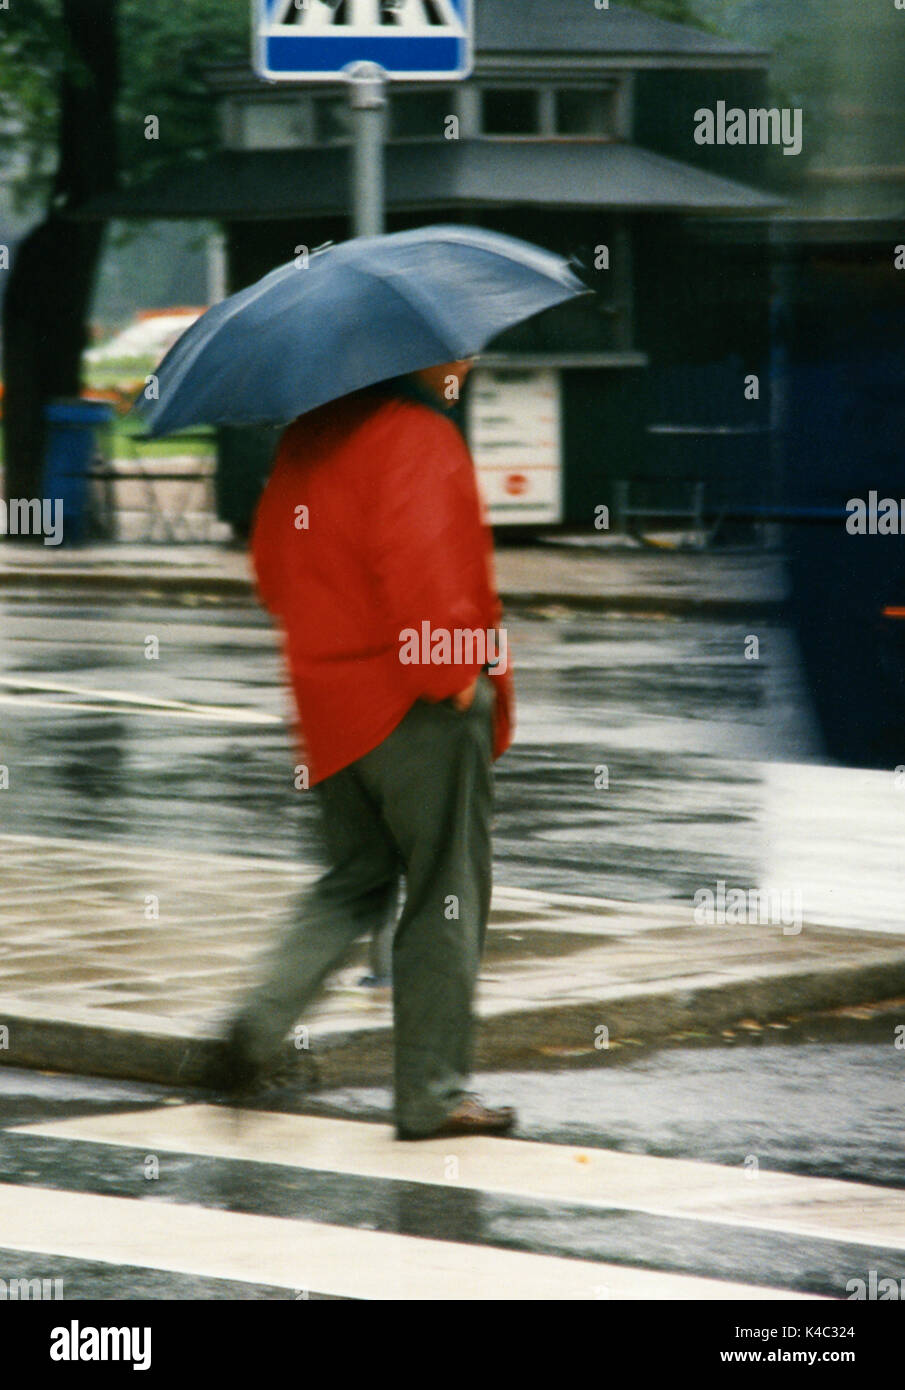 MAN UNDER UMBRELLA at summer rain 2008 - Stock Image